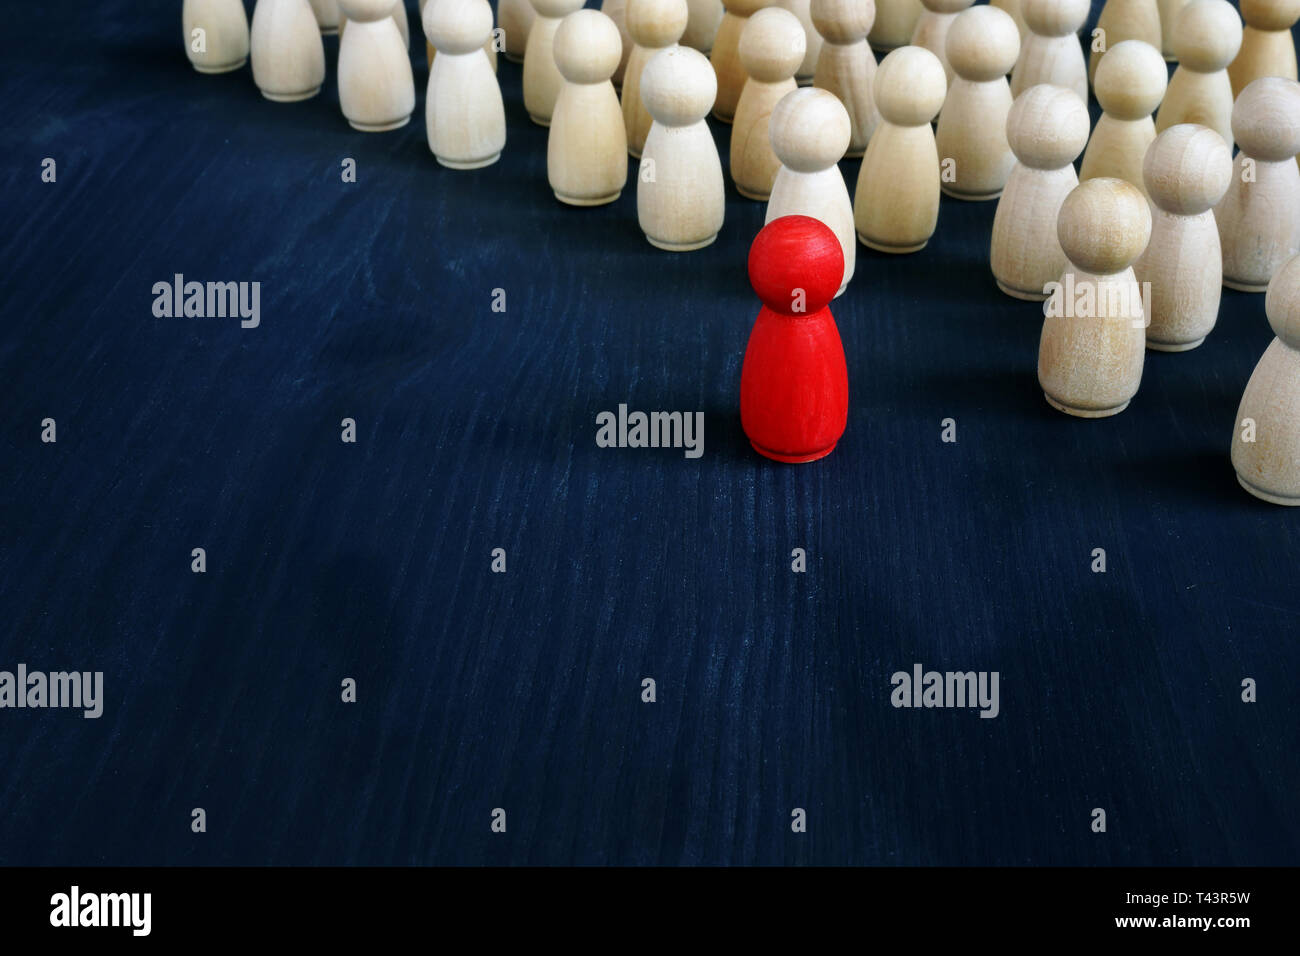 Stand out from the crowd concept. Uniqueness and individuality. Line of figurines. Stock Photo